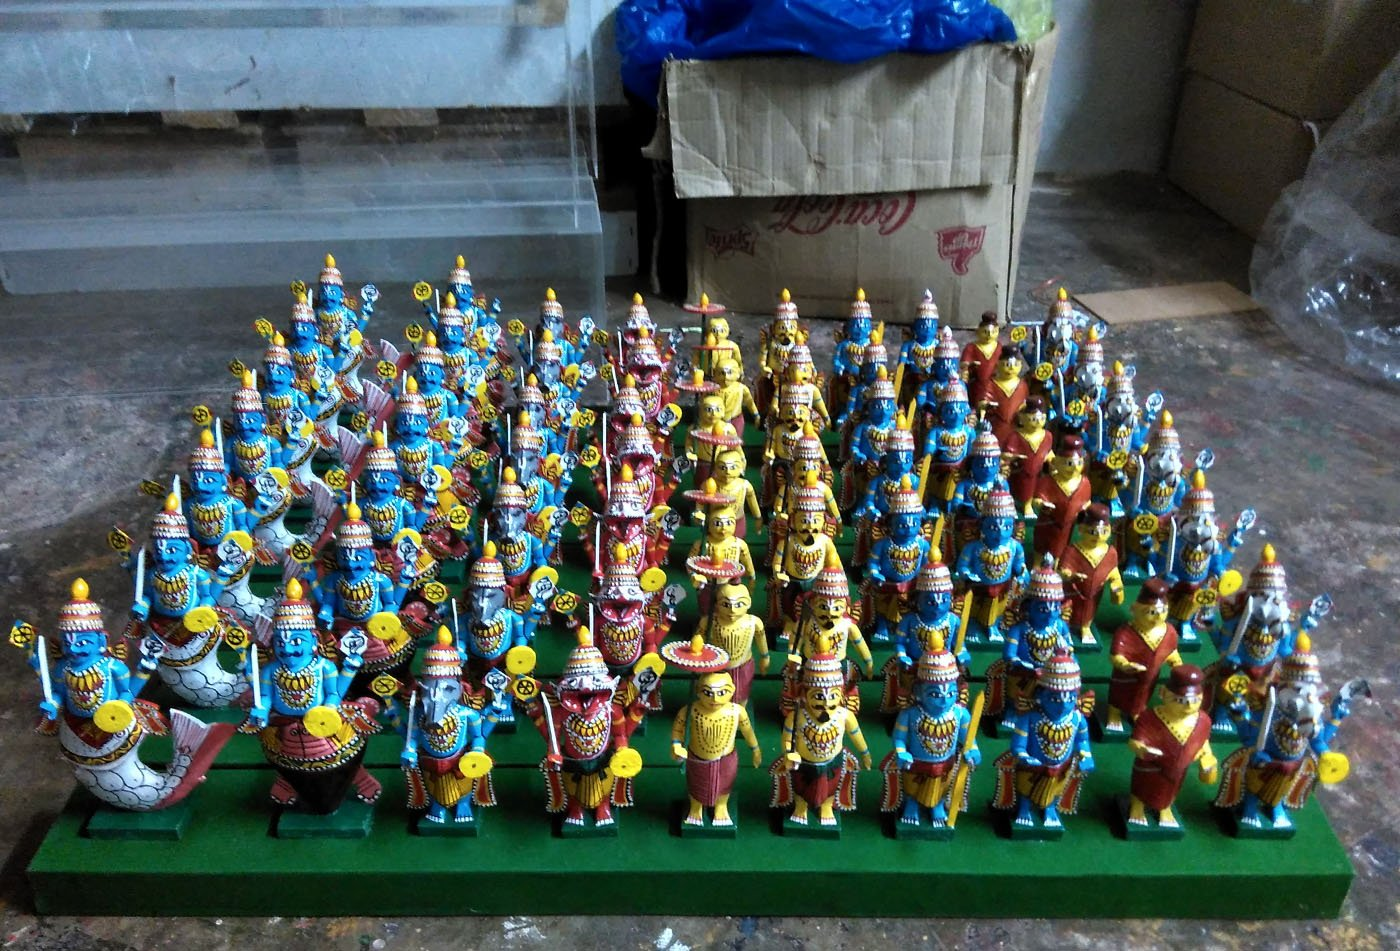 Wooden toys depicting Vishnu's dashavatar displayed